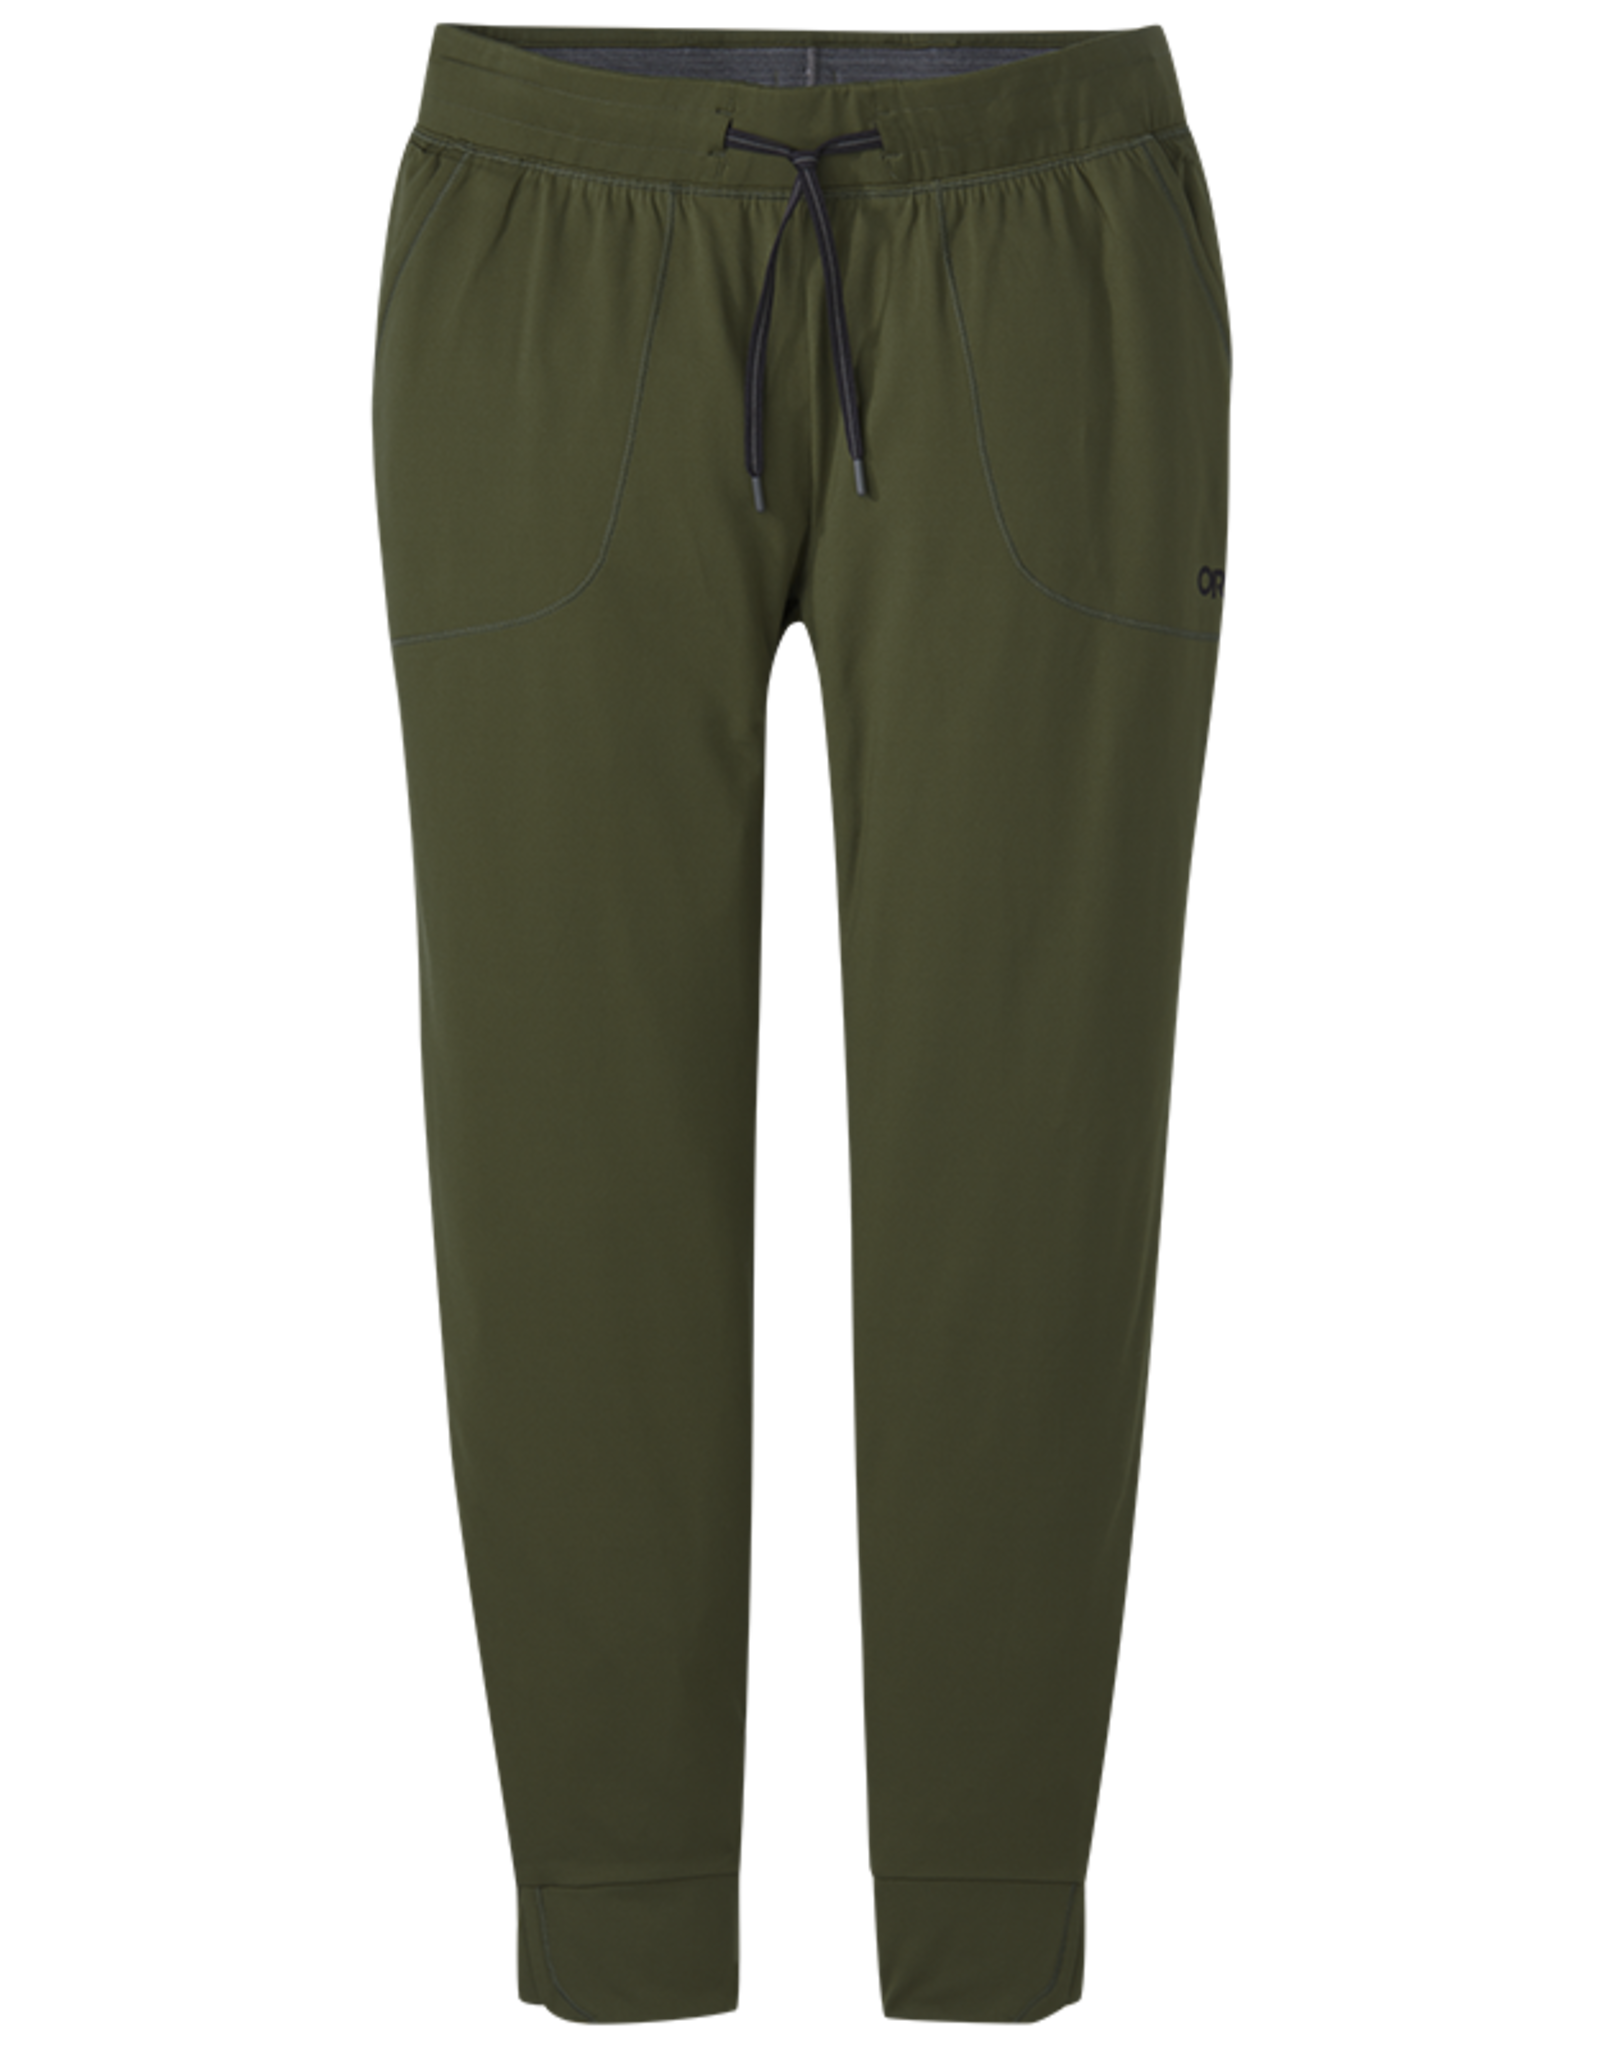 Outdoor Research Outdoor Research Melody Joggers Wmn's